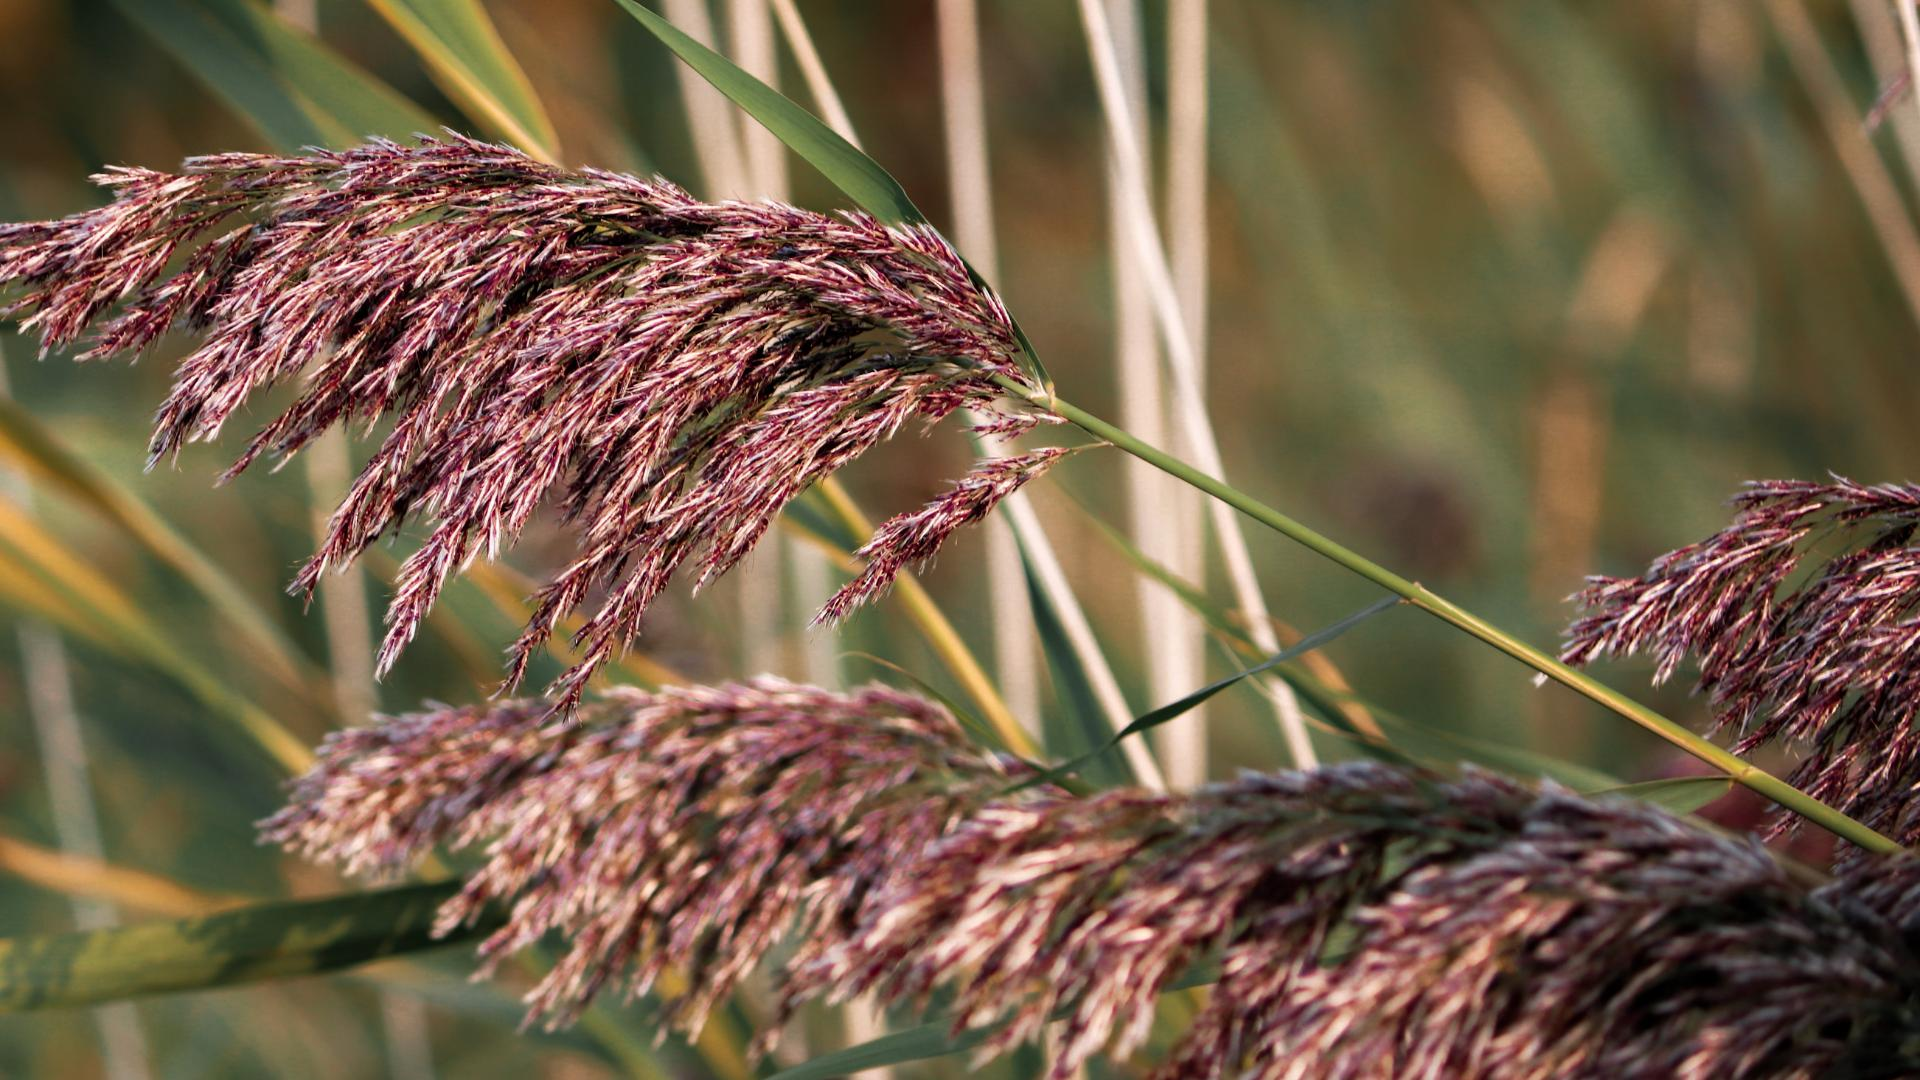 Up-close picture of phragmites